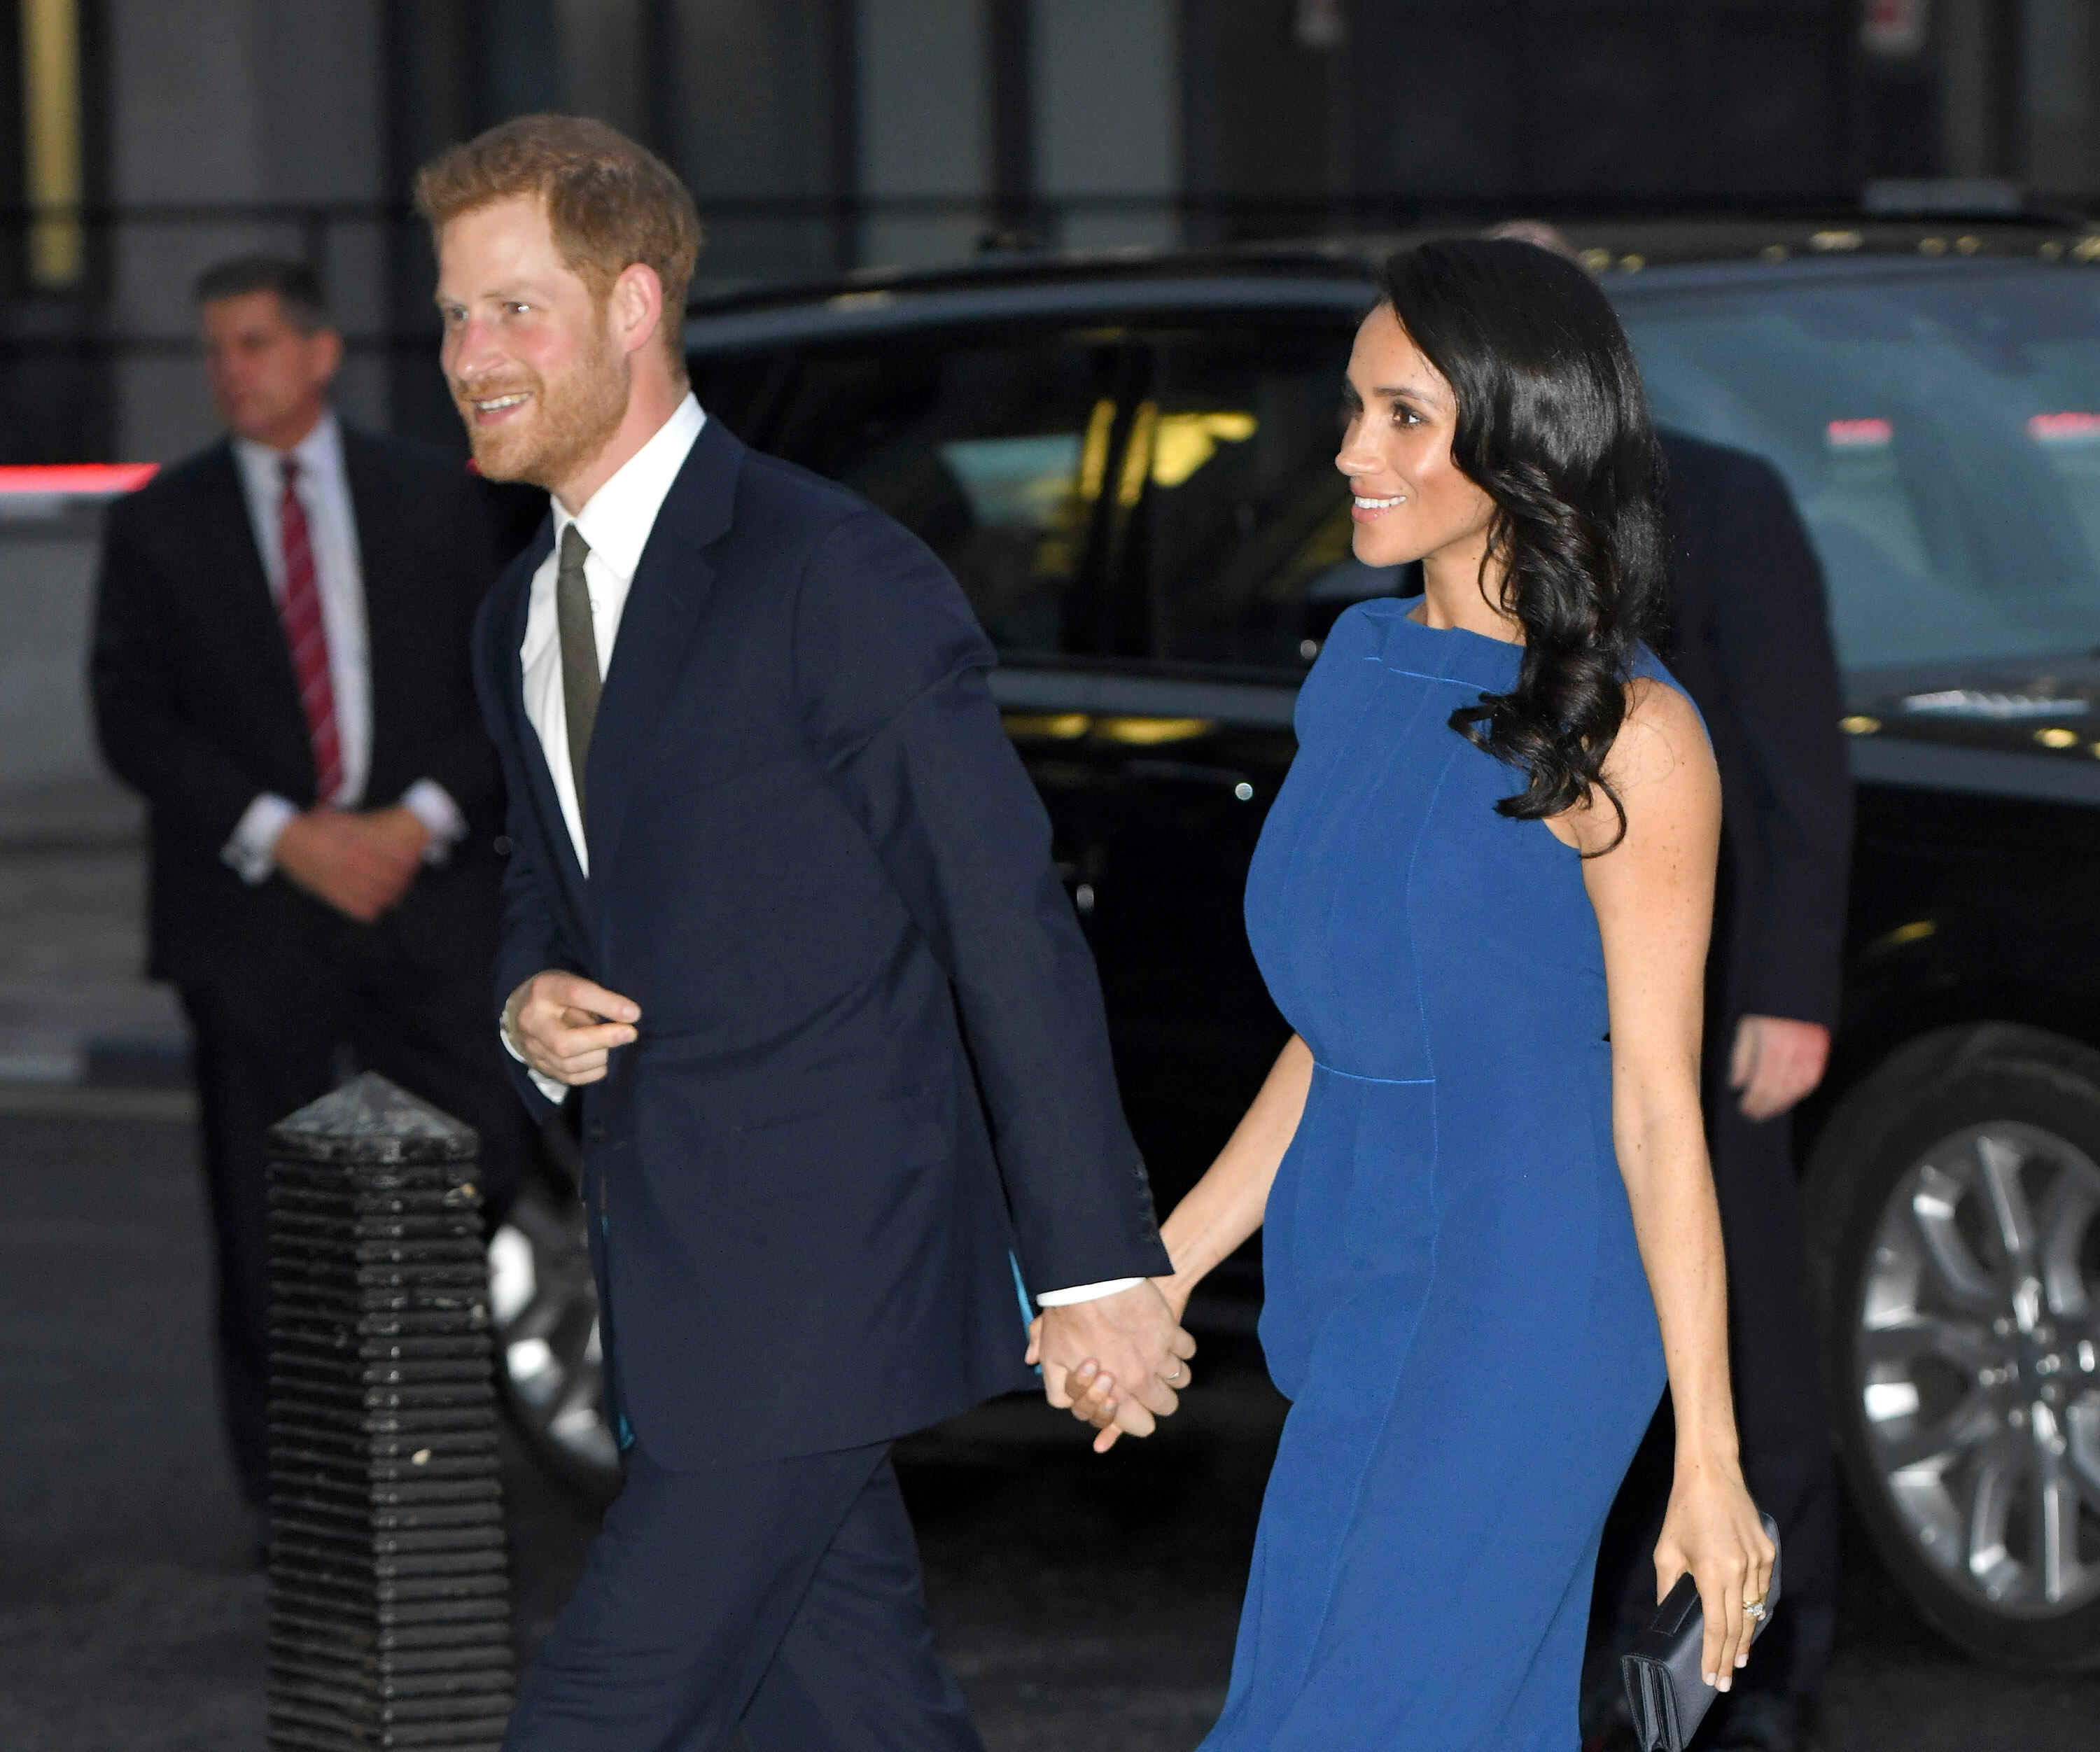 Is Meghan Markle Pregnant? This Dress Has Everyone